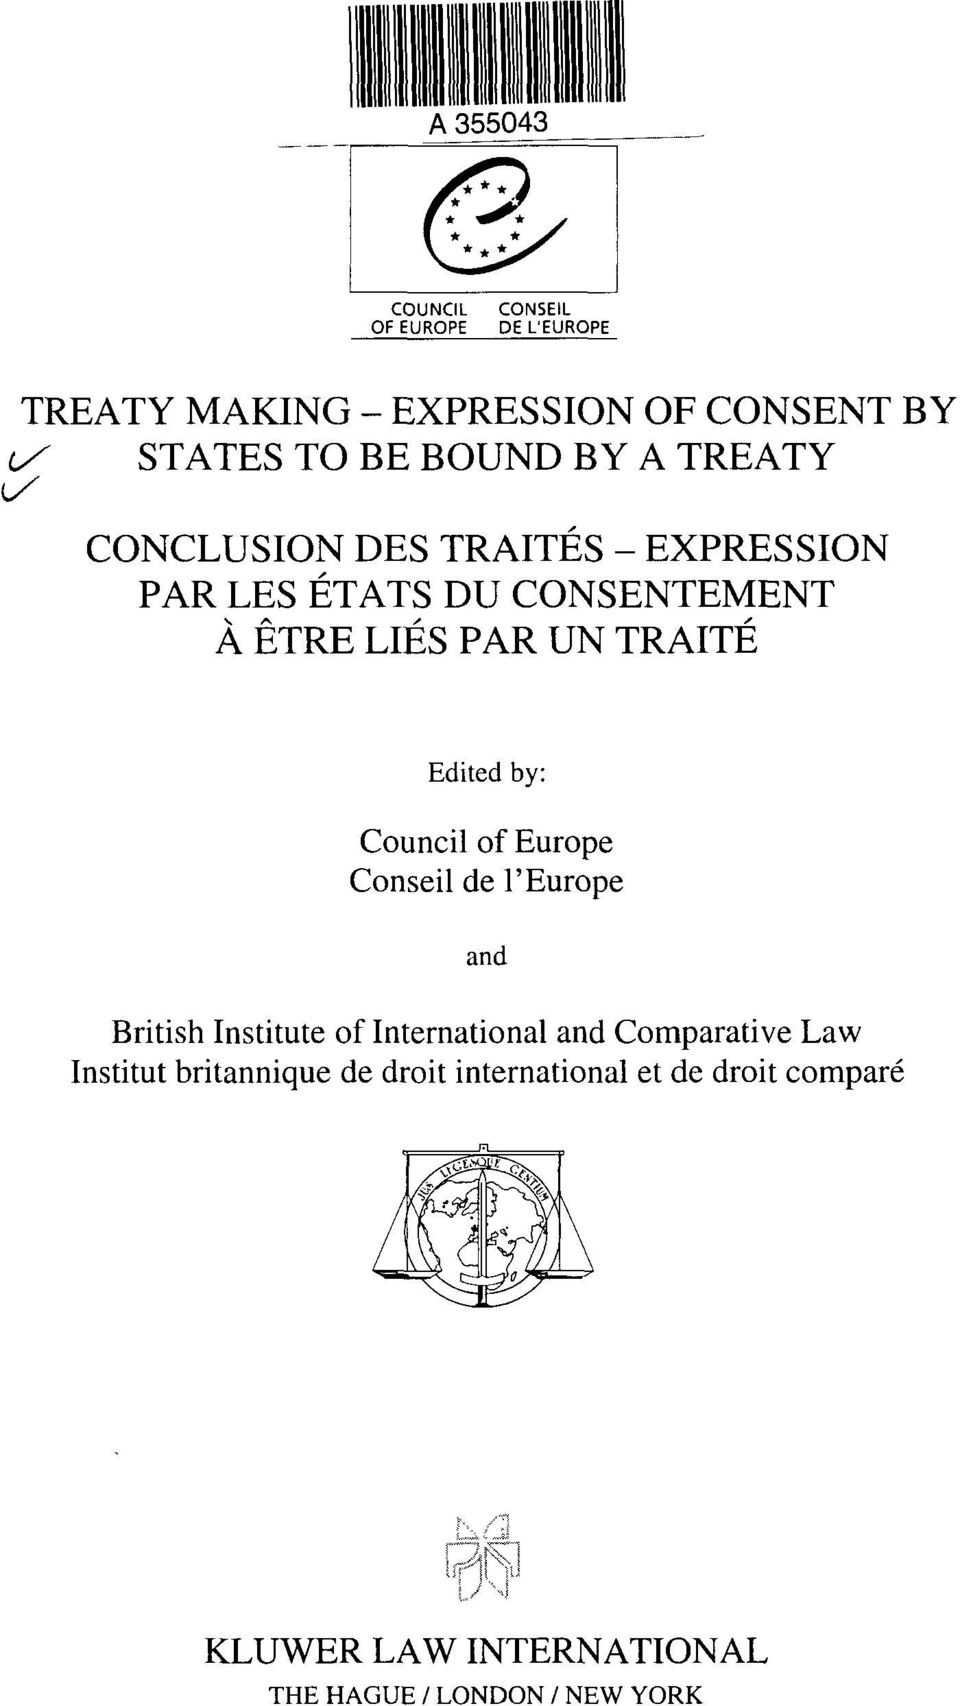 by: Council of Europe Conseil de l'europe and British Institute of International and Comparative Law Institut